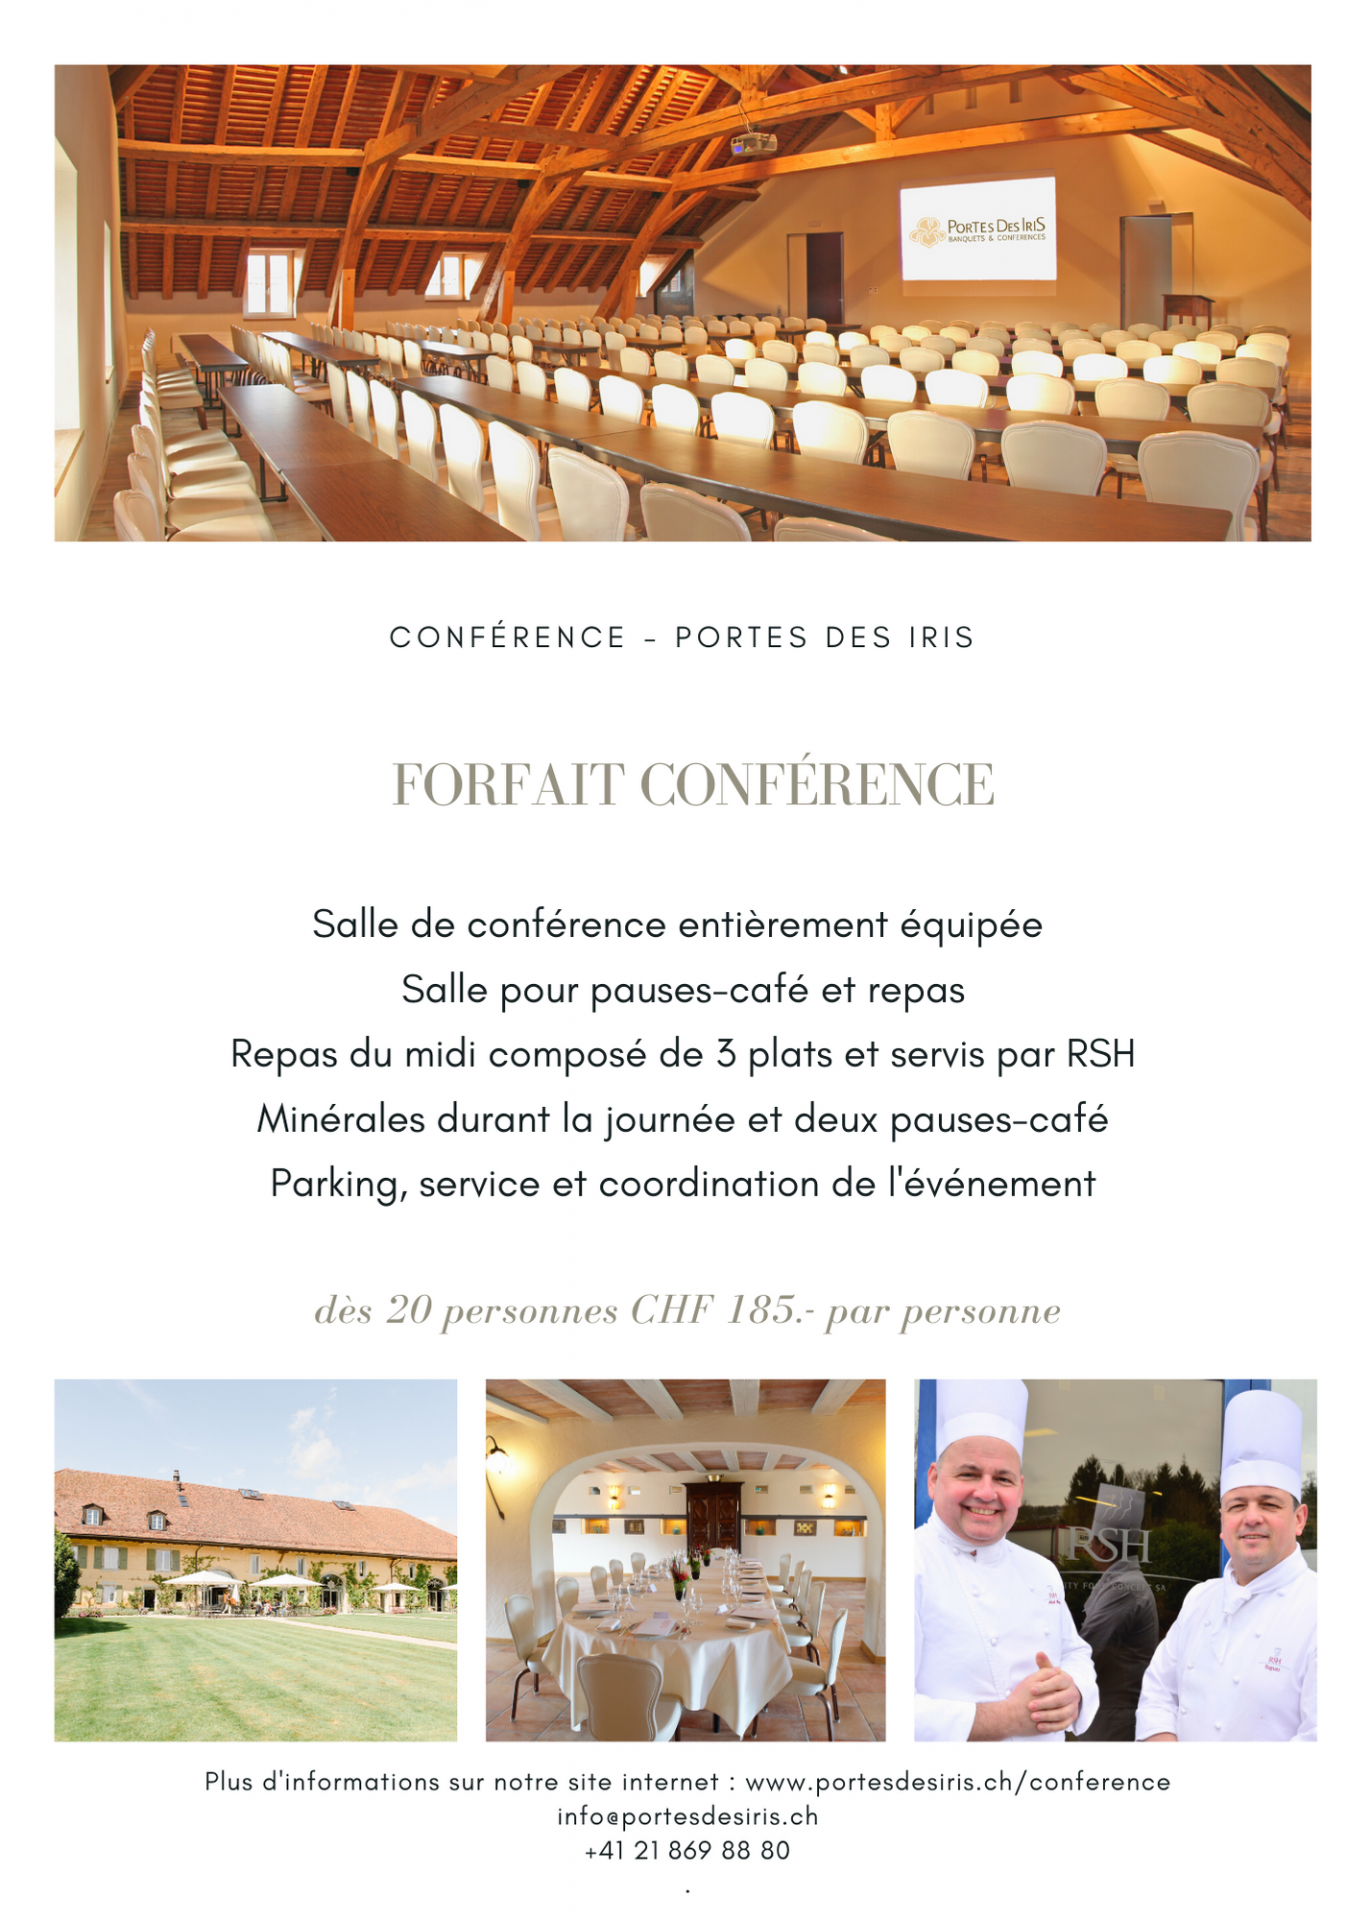 Conference package 1 - Conférences